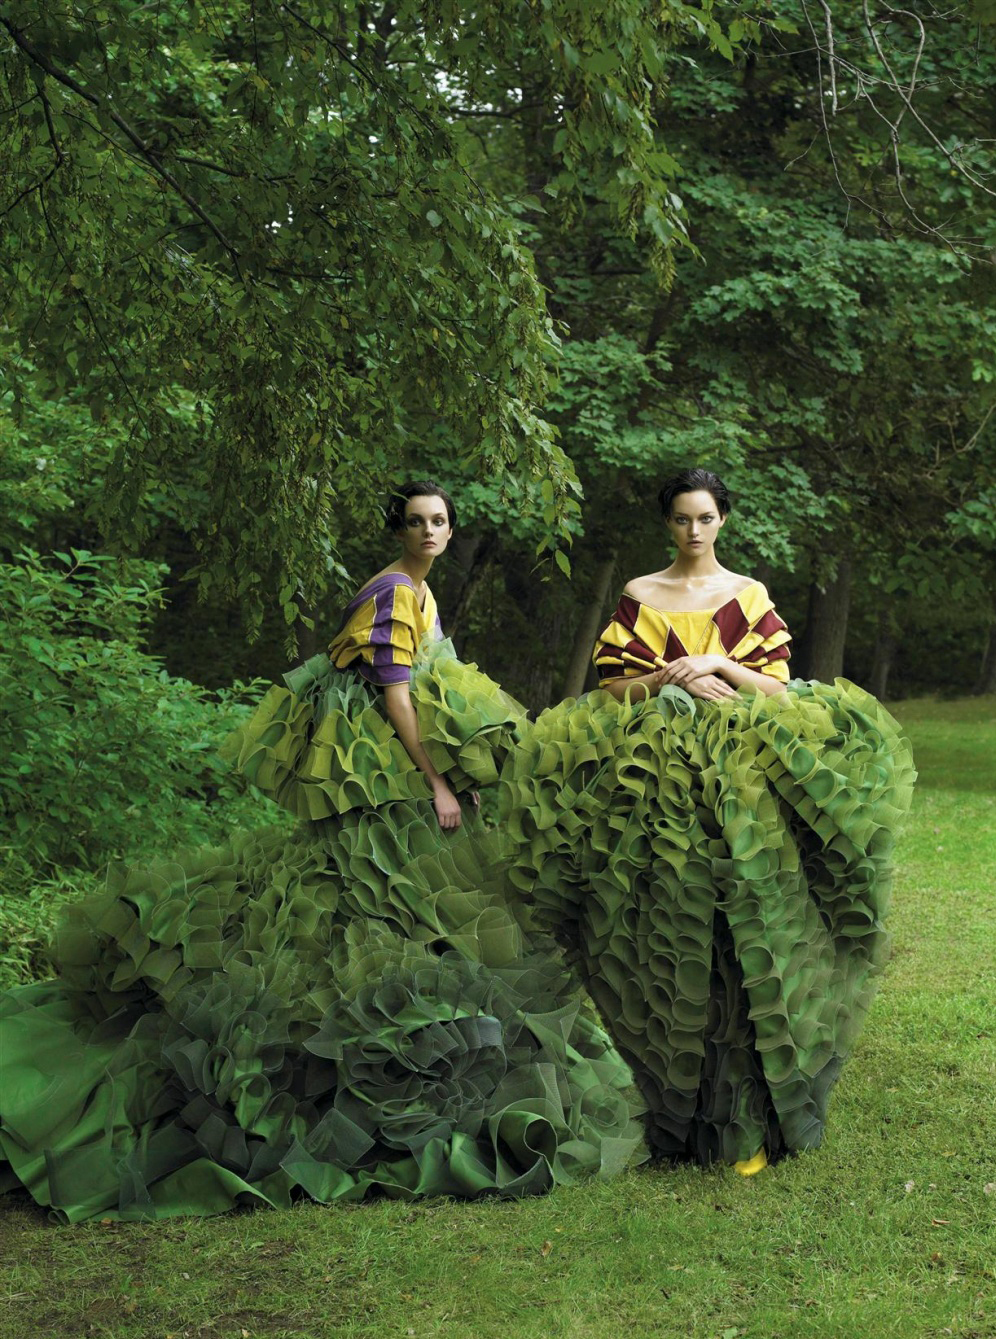 """Garden of Delights"" photographed by Steven Meisel for Vogue US, December 2006."